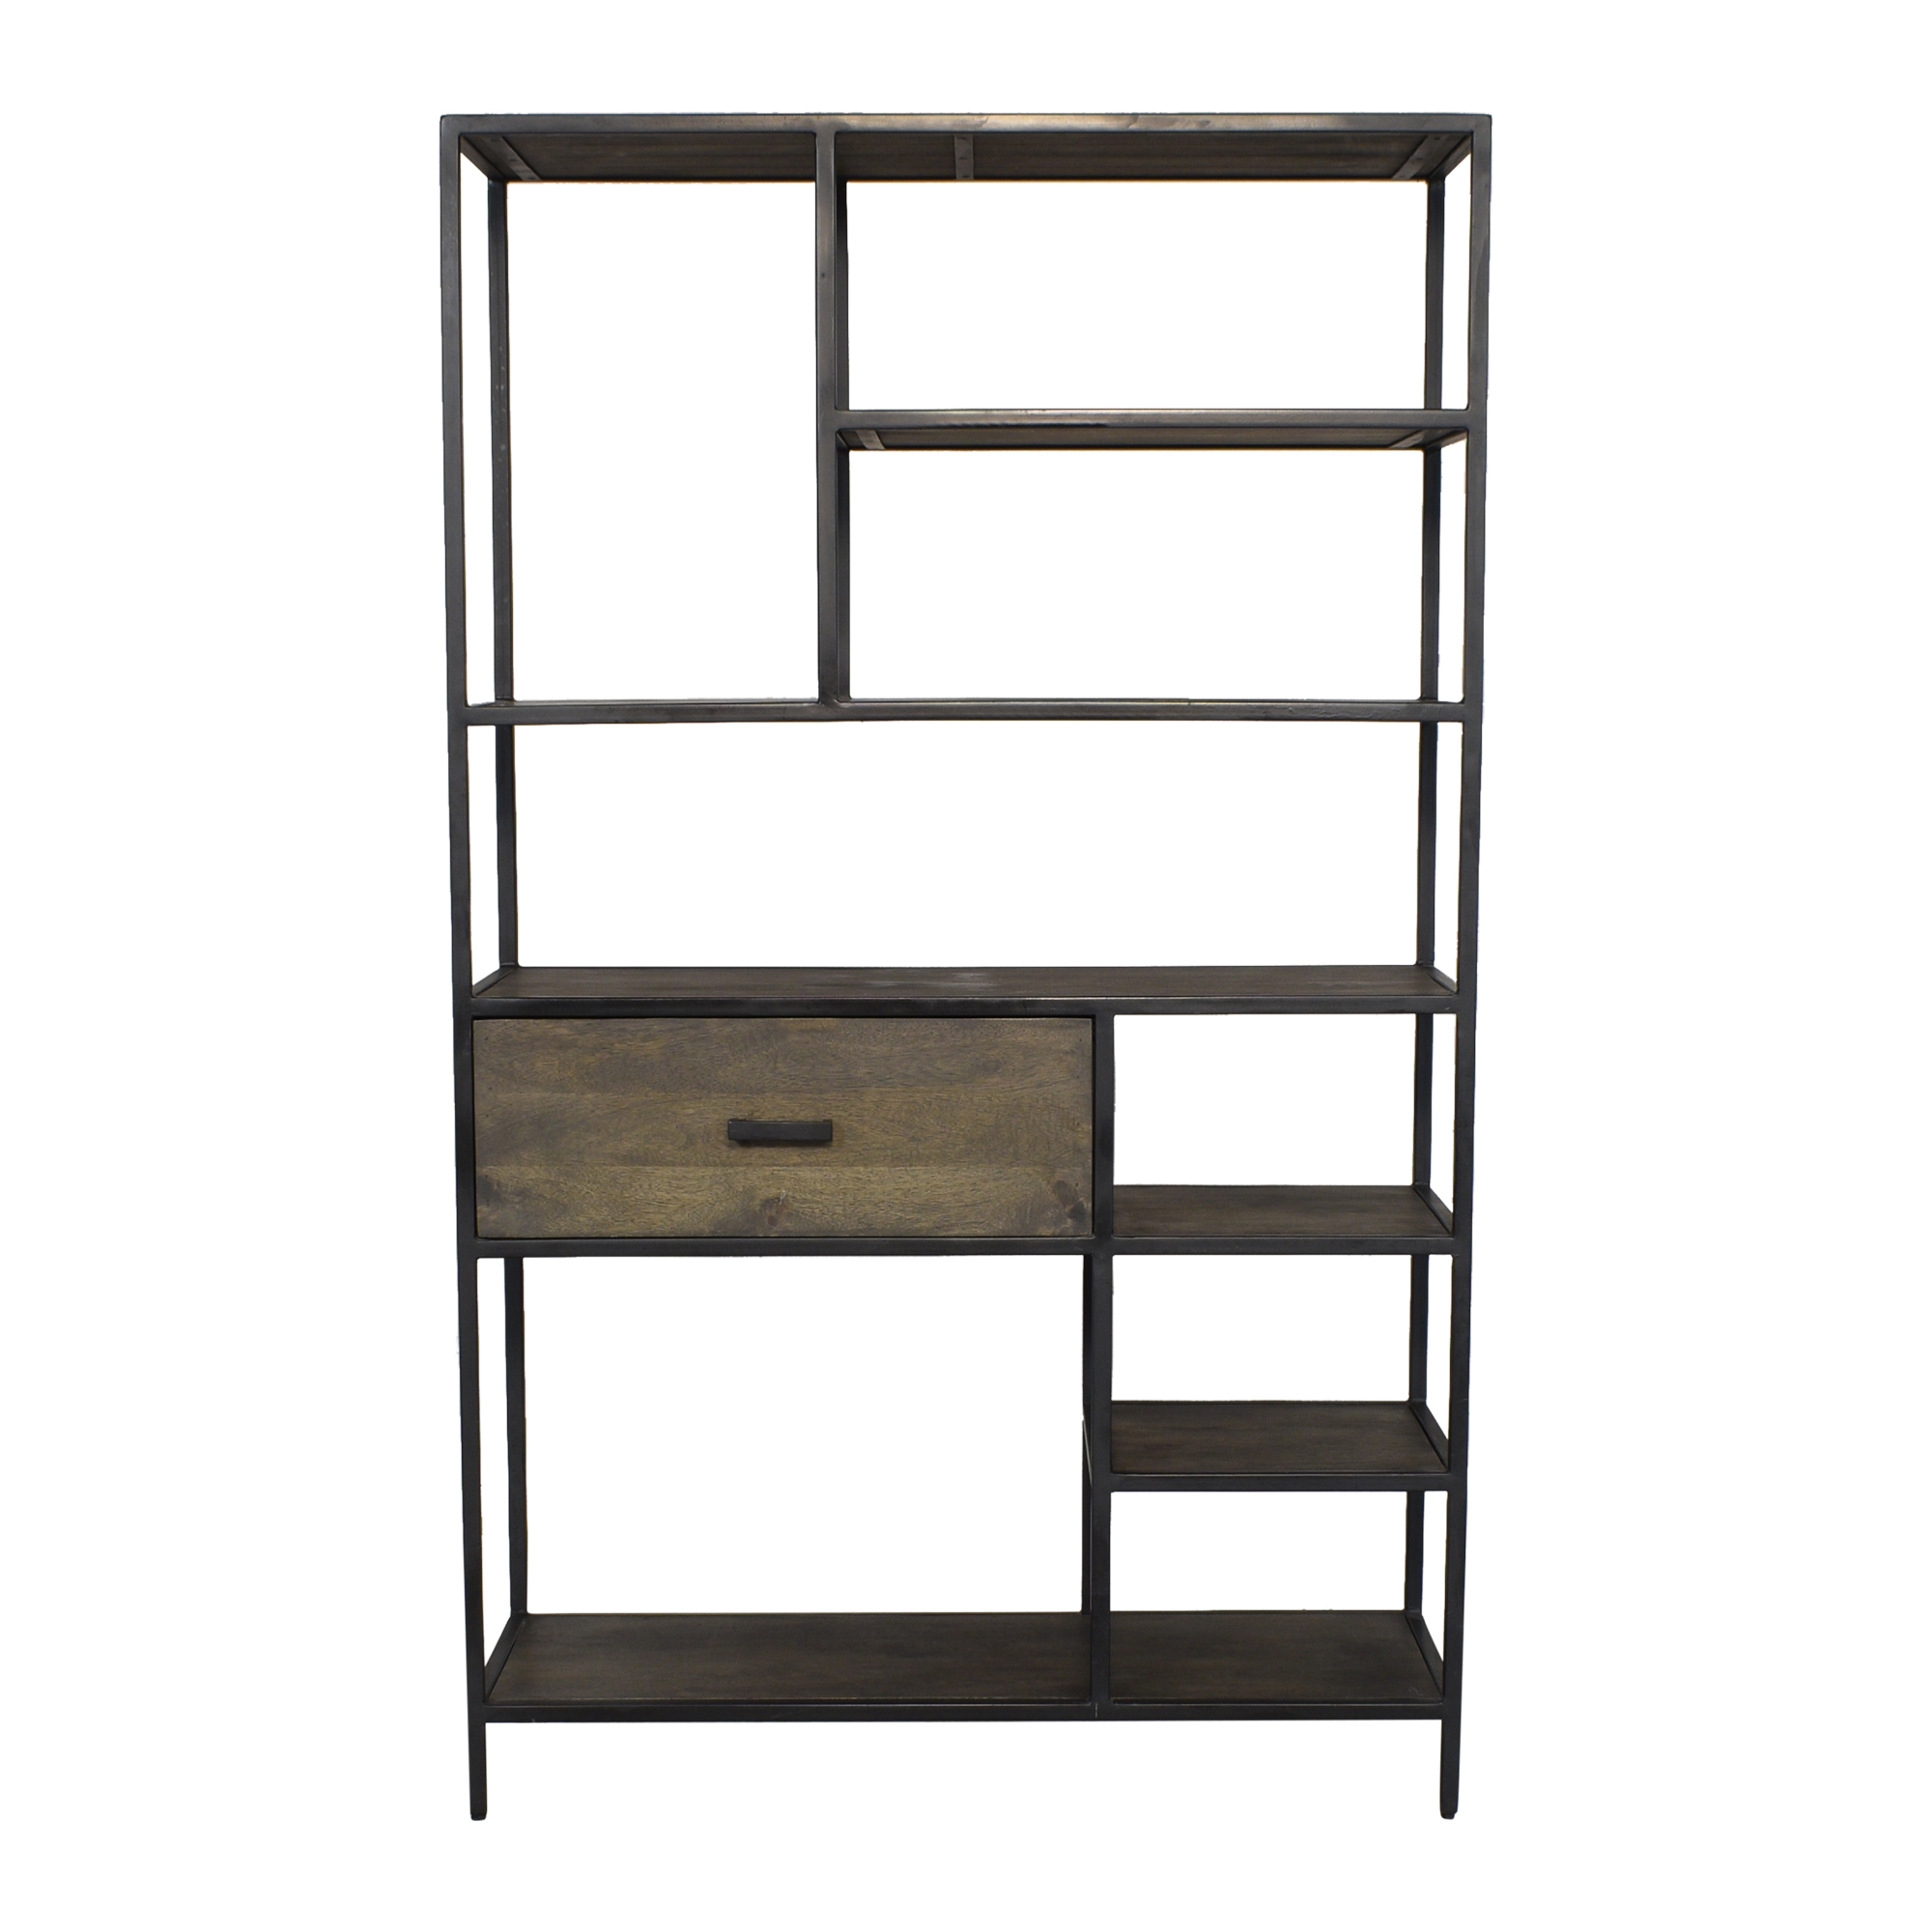 Coast to Coast Accents Coast to Coast Accents Open Frame Bookcase with Drawer ct